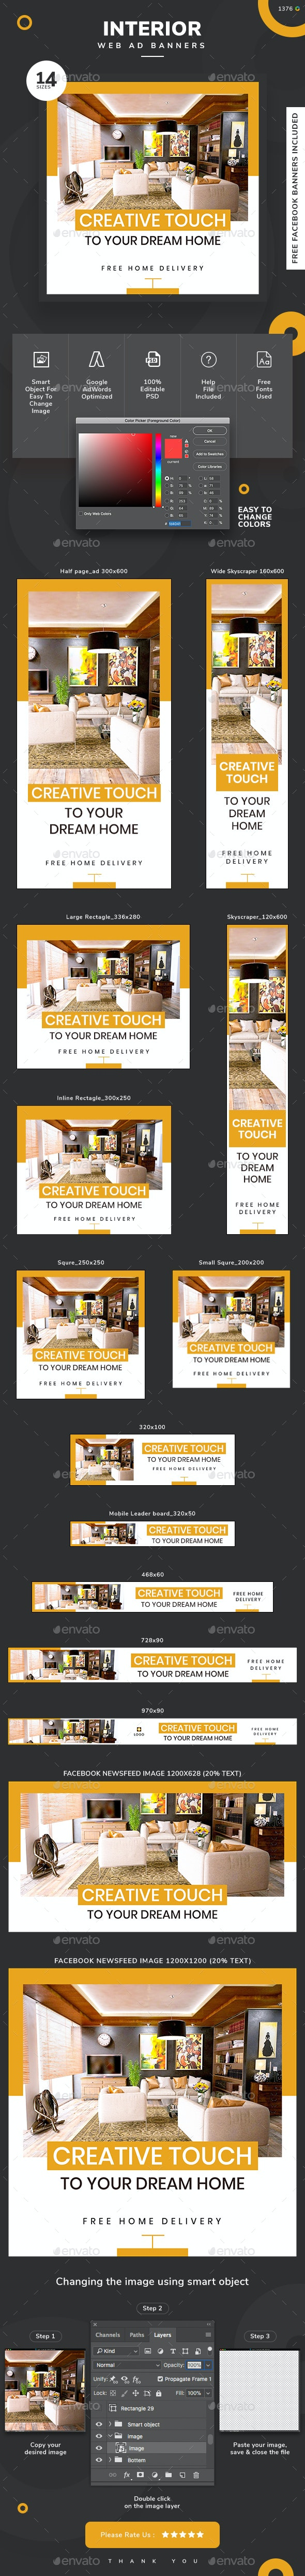 Interior Design Web Banner Set - Banners & Ads Web Elements